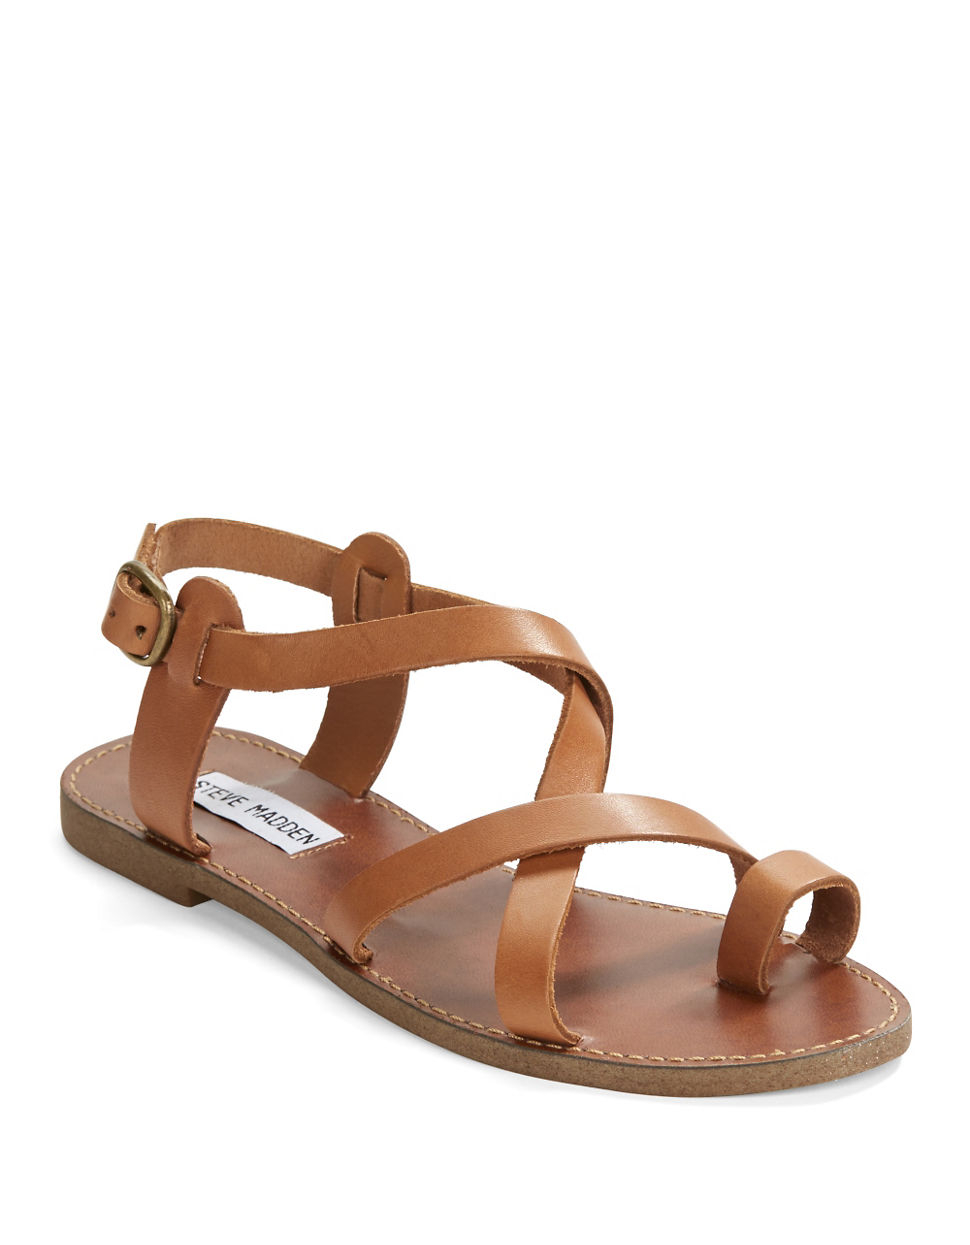 586ae13ba64 Steve Madden Gray Agathist Leather Strappy Sandals